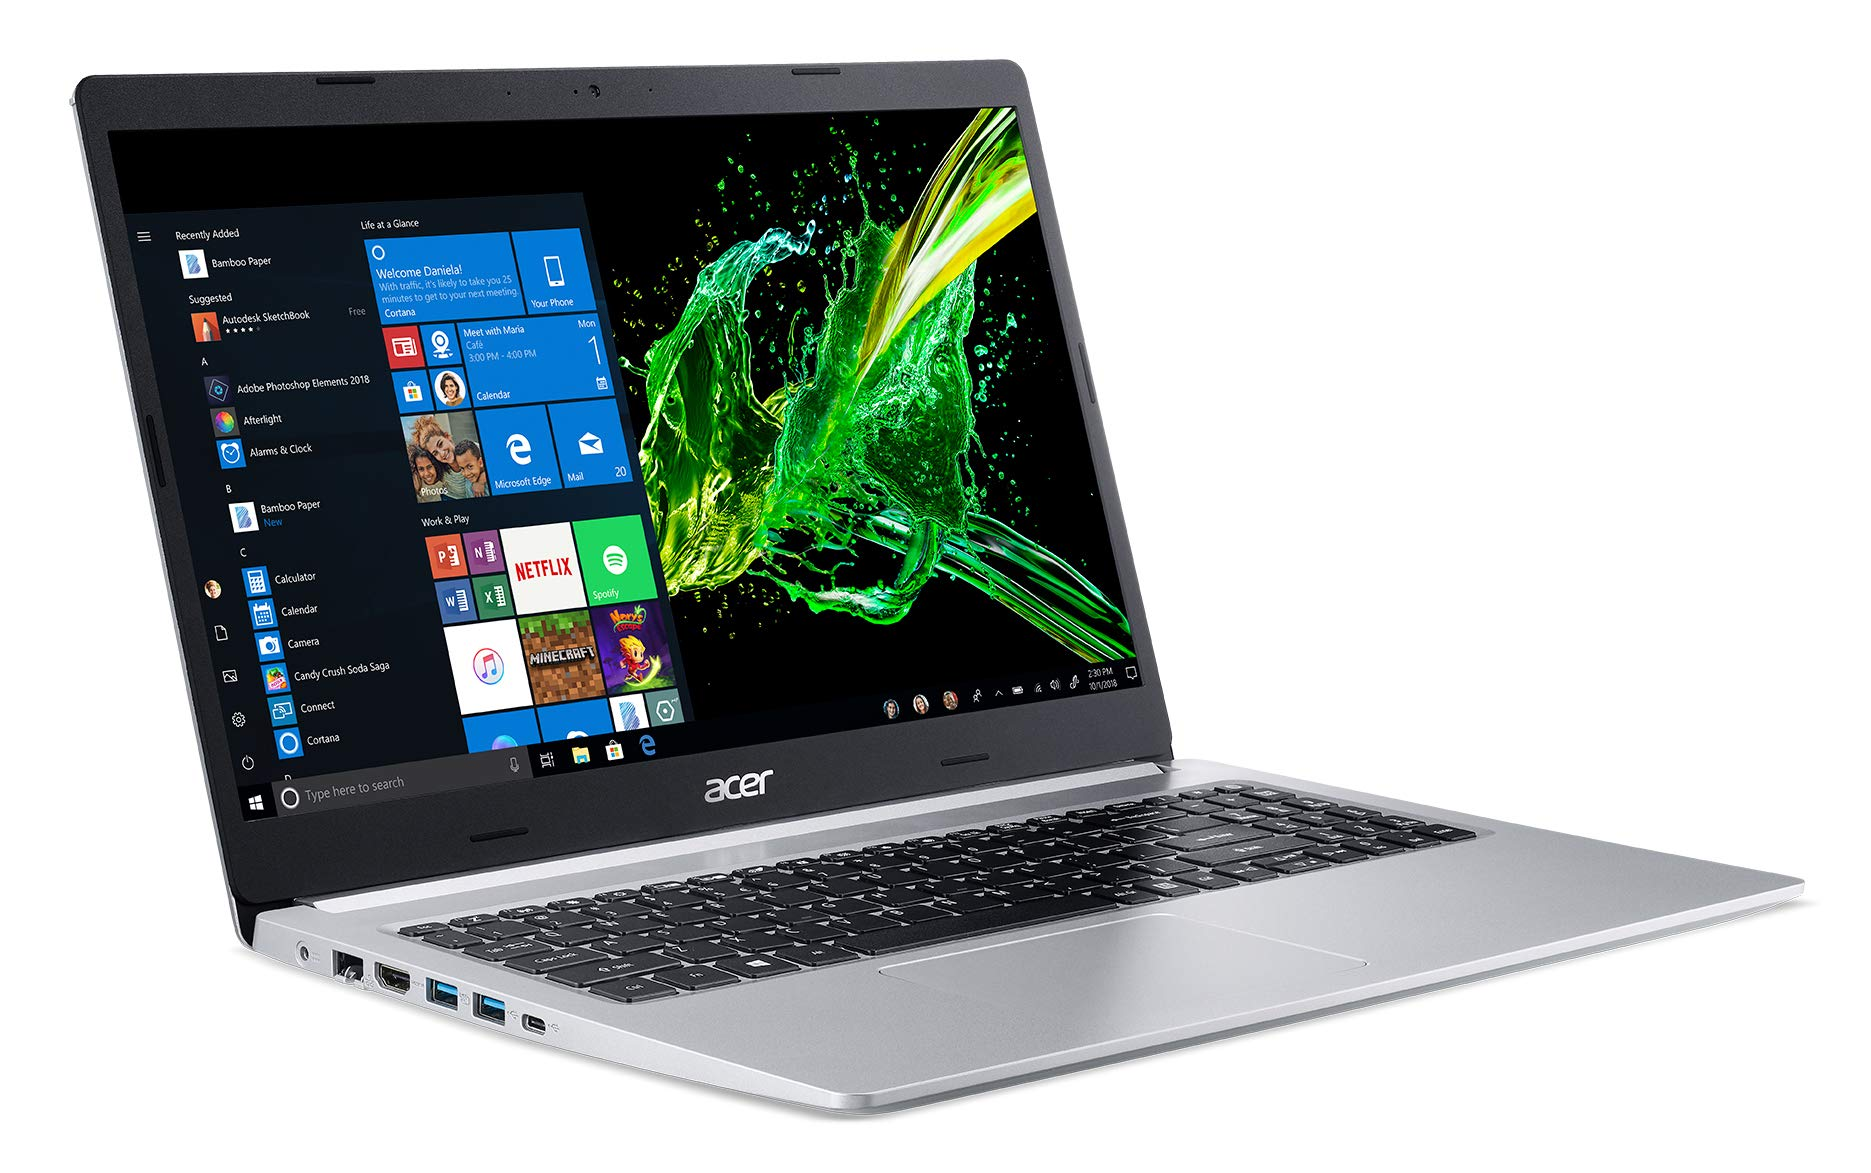 Acer Aspire 5 Slim Laptop, 15.6'' Full HD IPS Display, 8th Gen Intel Core i3-8145U, 4GB DDR4, 128GB PCIe Nvme SSD, Backlit Keyboard, Windows 10 in S Mode, A515-54-30BQ by Acer